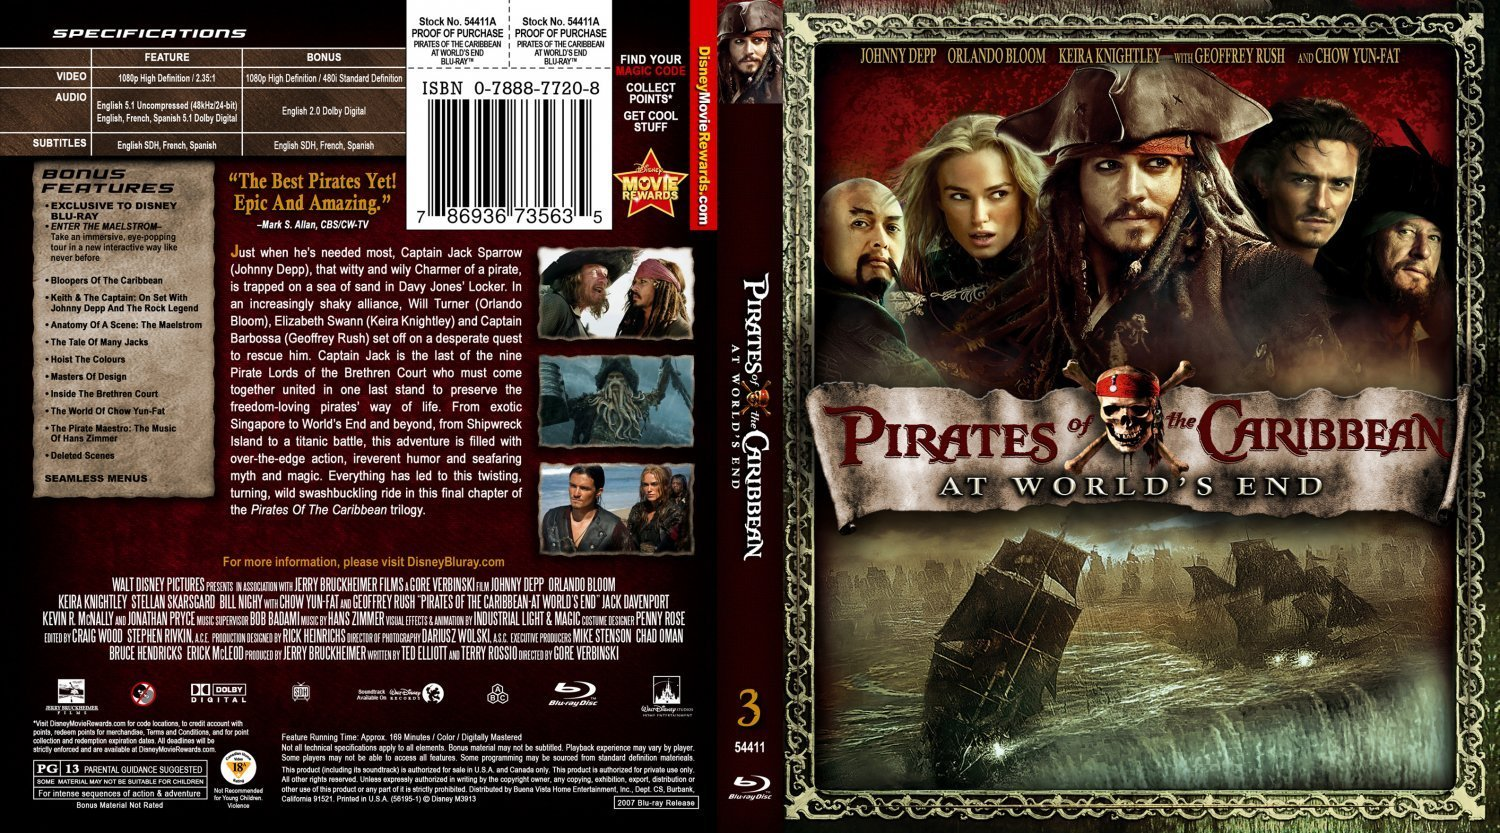 Pirates Of The Caribbean At World's End | Dvd Covers and Labels